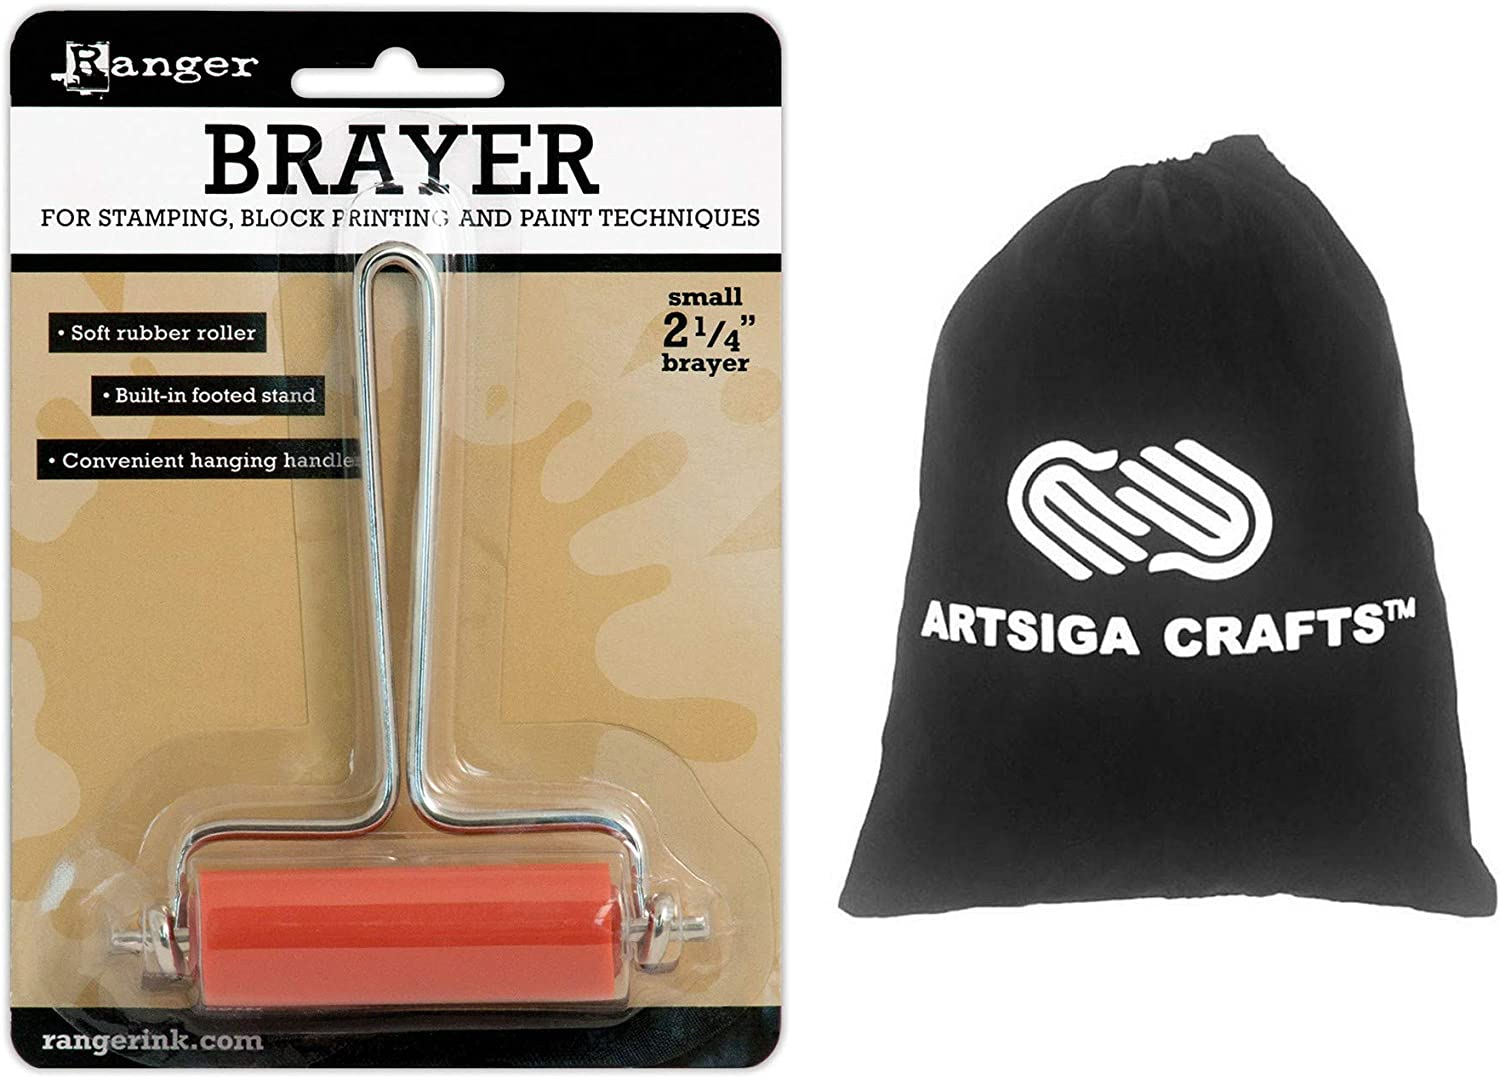 Ranger Ink Inky Roller Brayer 2.25 inches Small 1-Pack Bundled with 1 Artsiga Crafts Small Project Bag